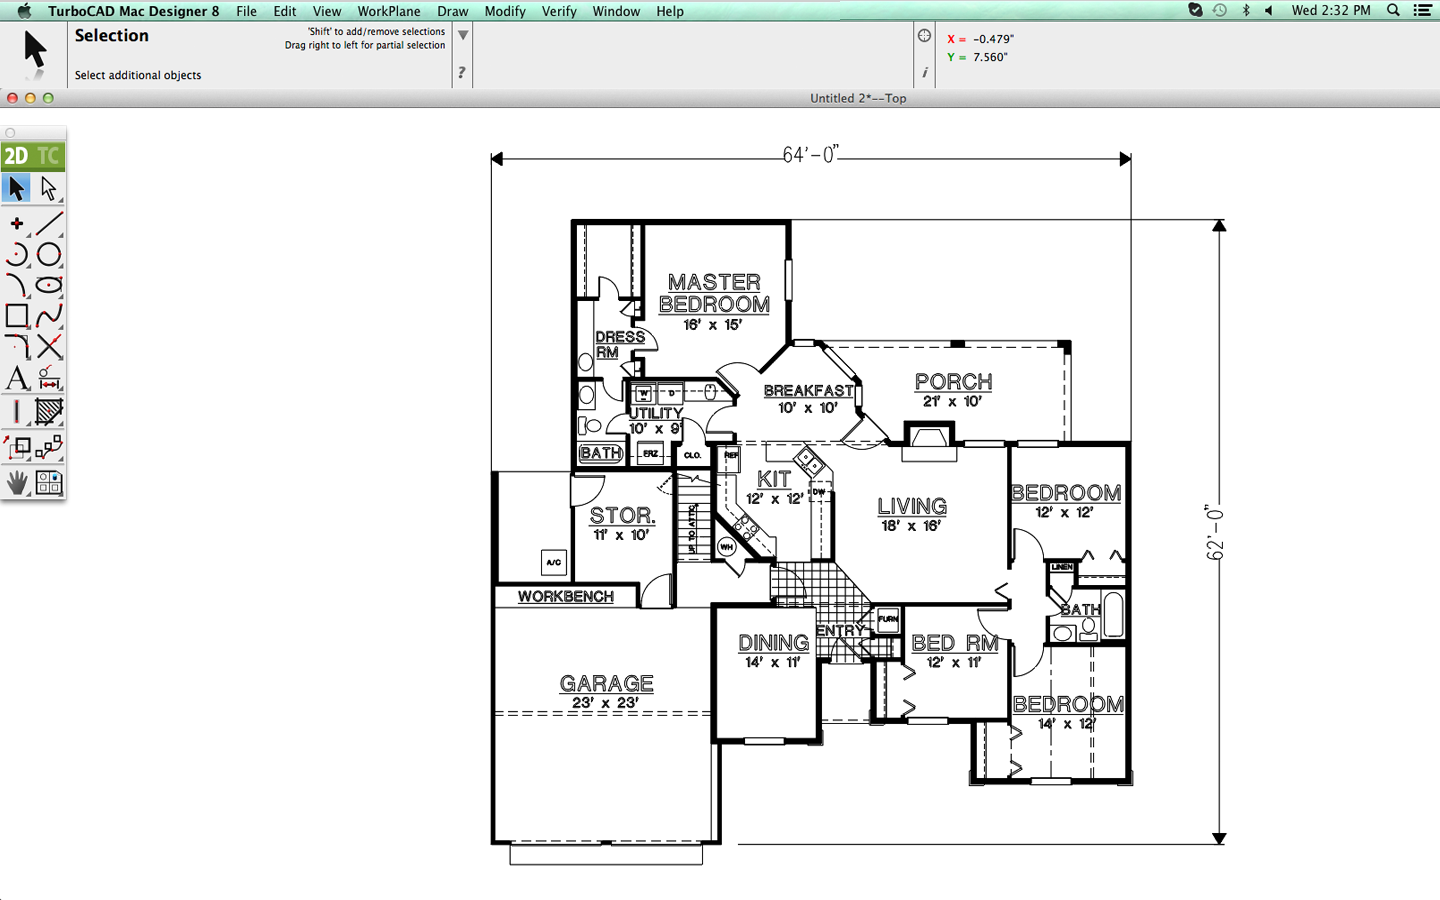 Online Floorplan Tool Turbocad For Apple Mac Paulthecad